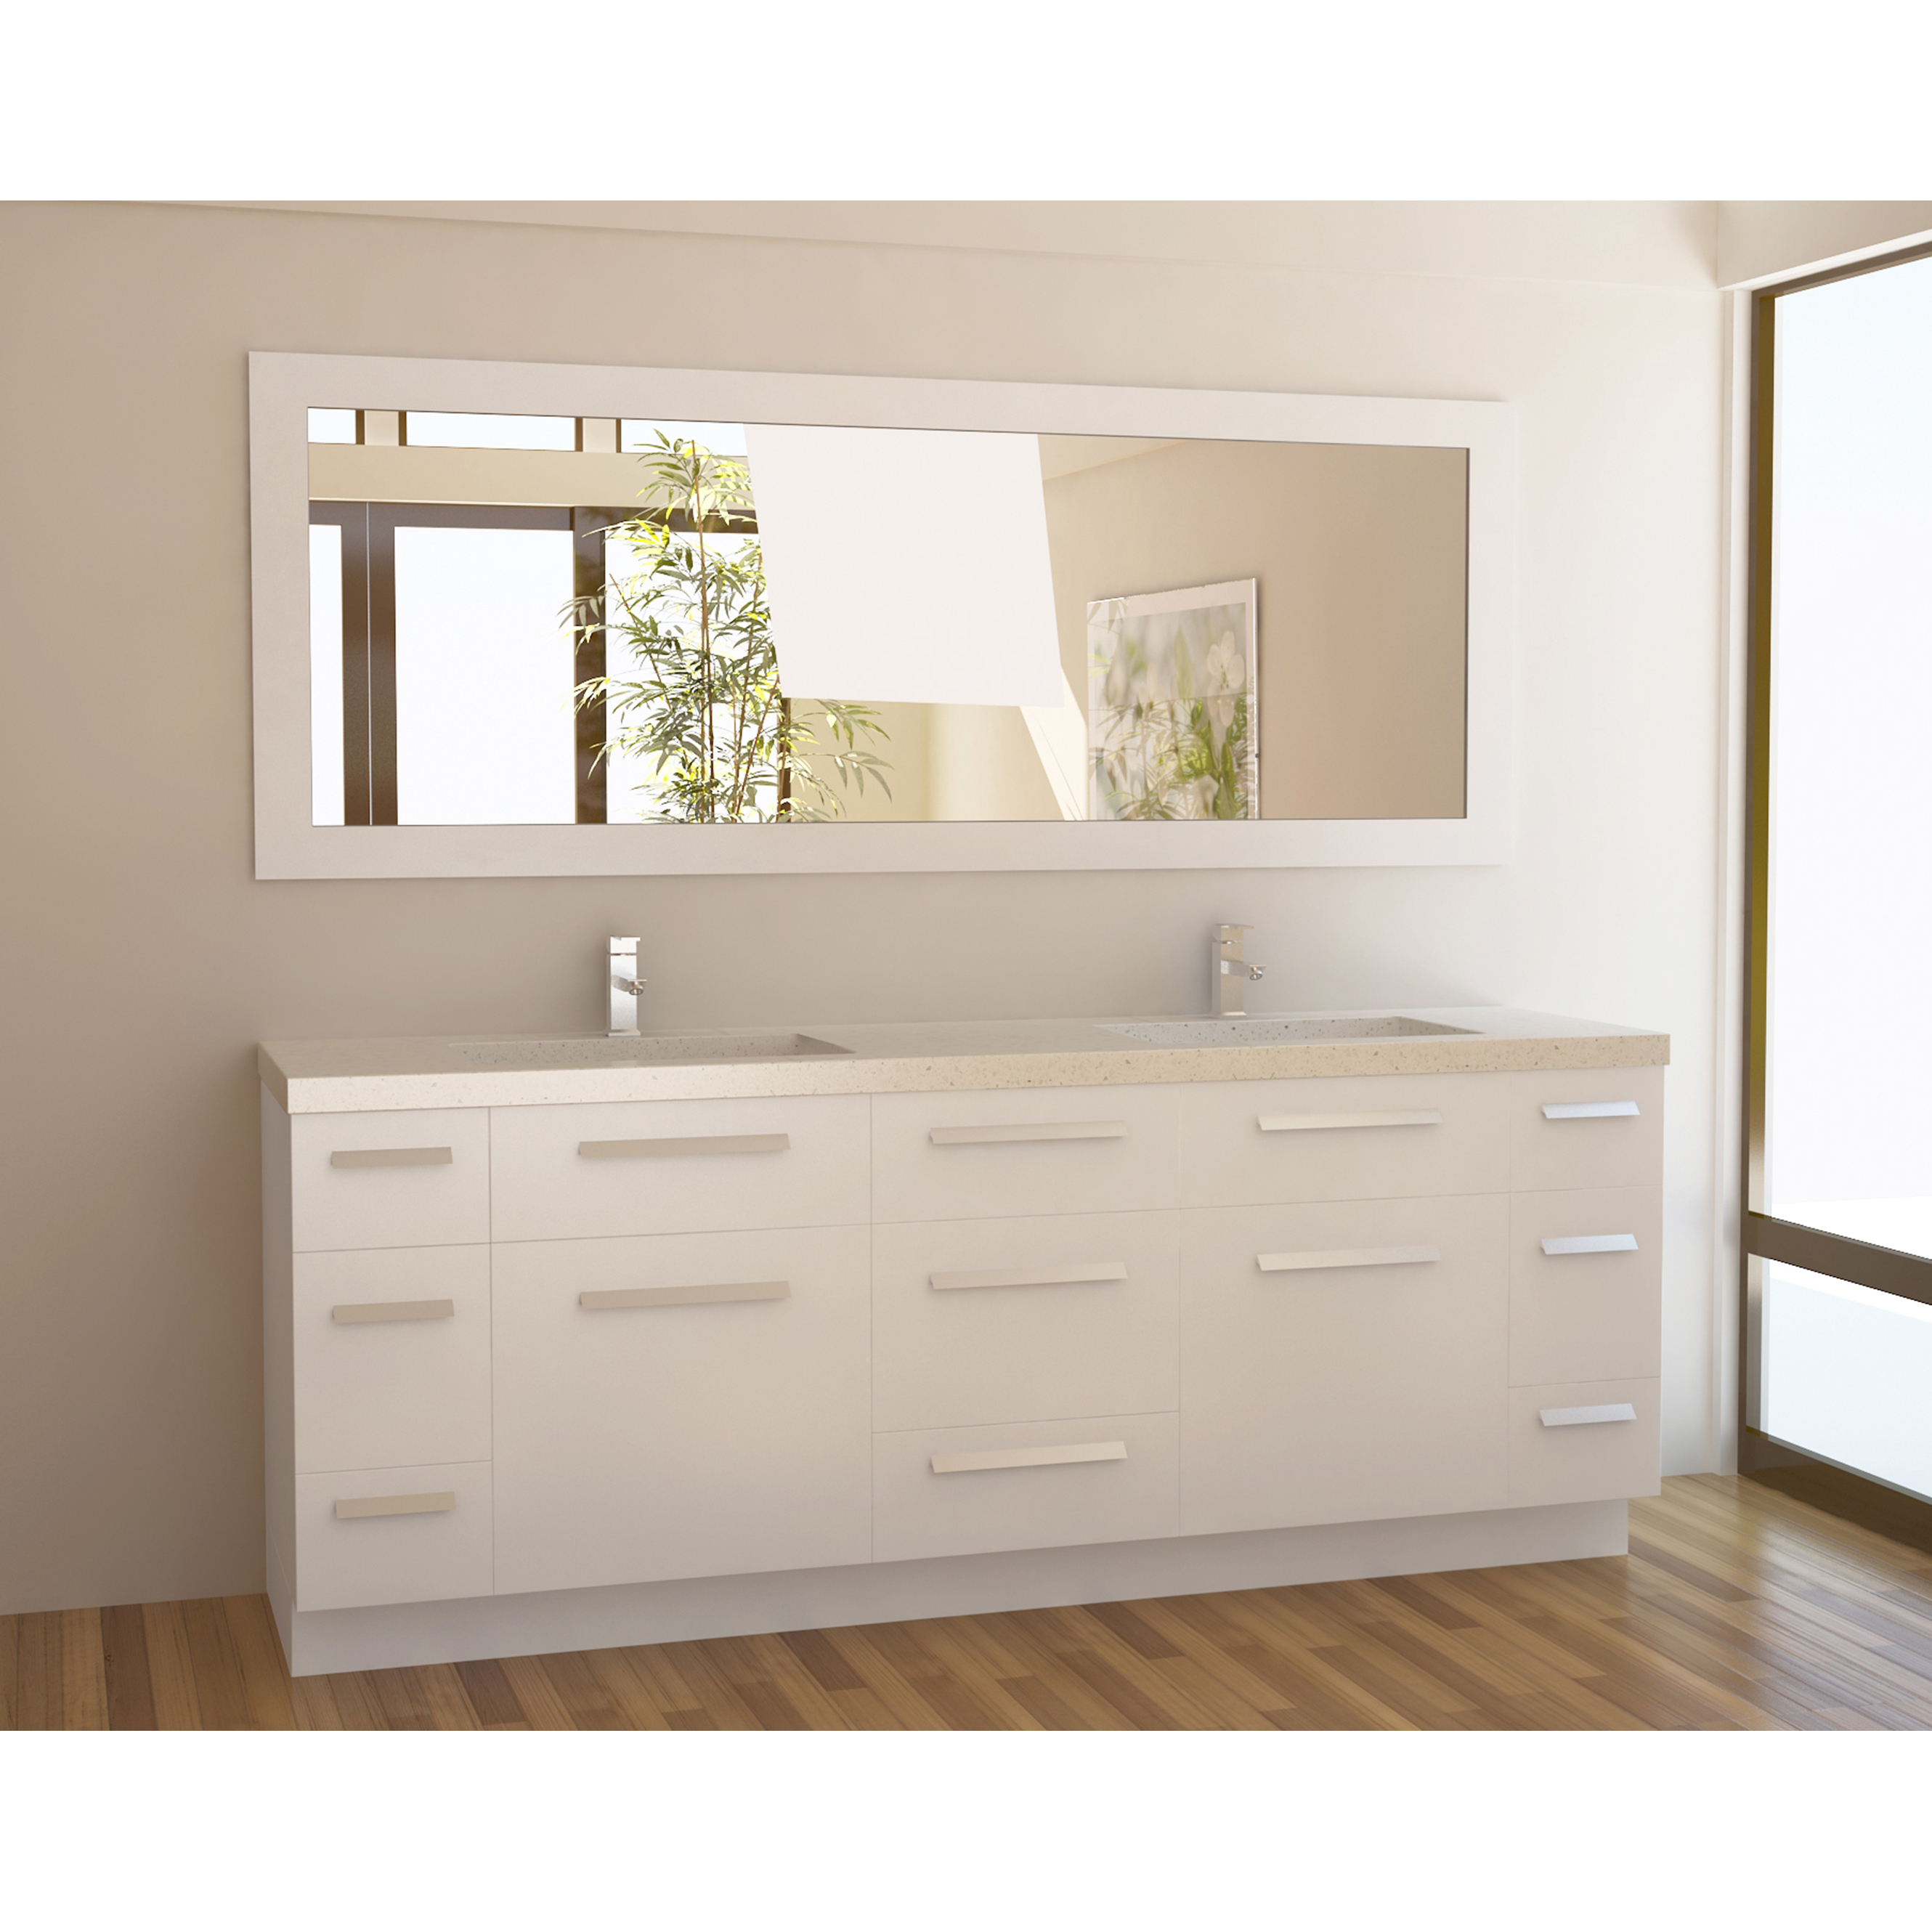 84 inch bathroom vanity the variants homesfeed. Black Bedroom Furniture Sets. Home Design Ideas